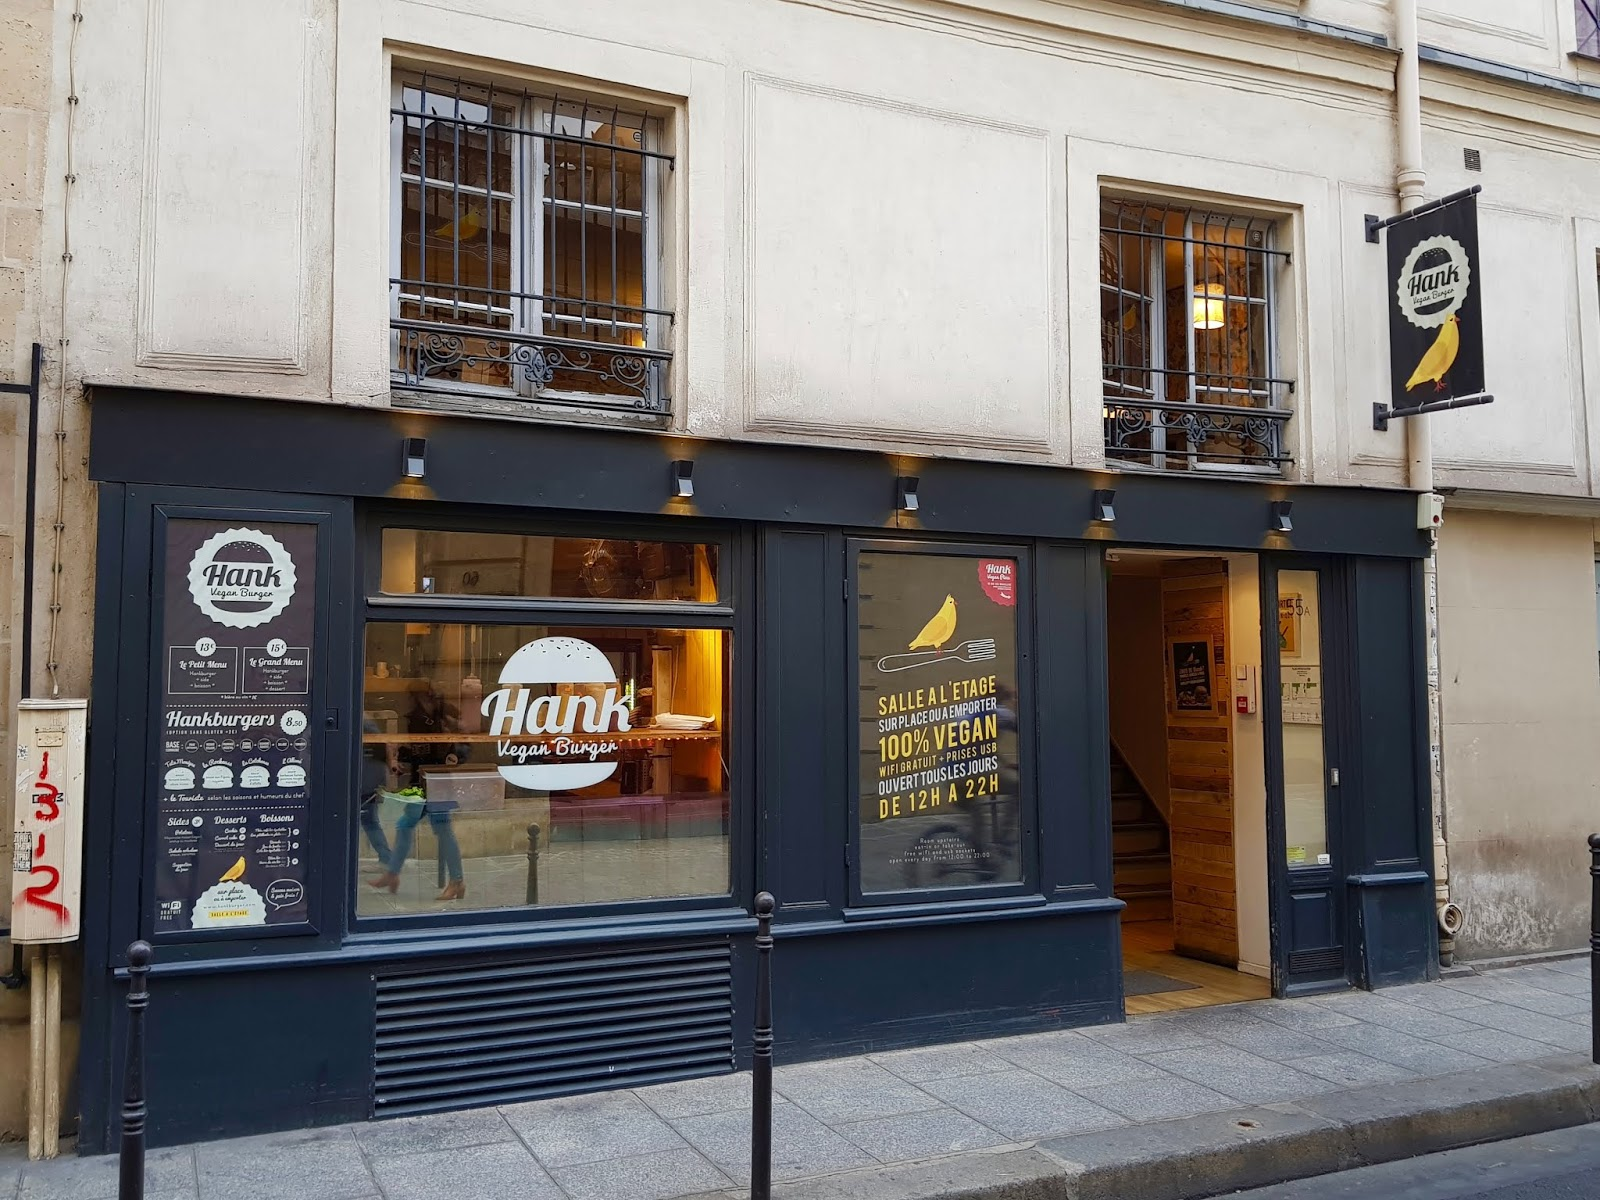 exterior of hank burger restaurant in Paris